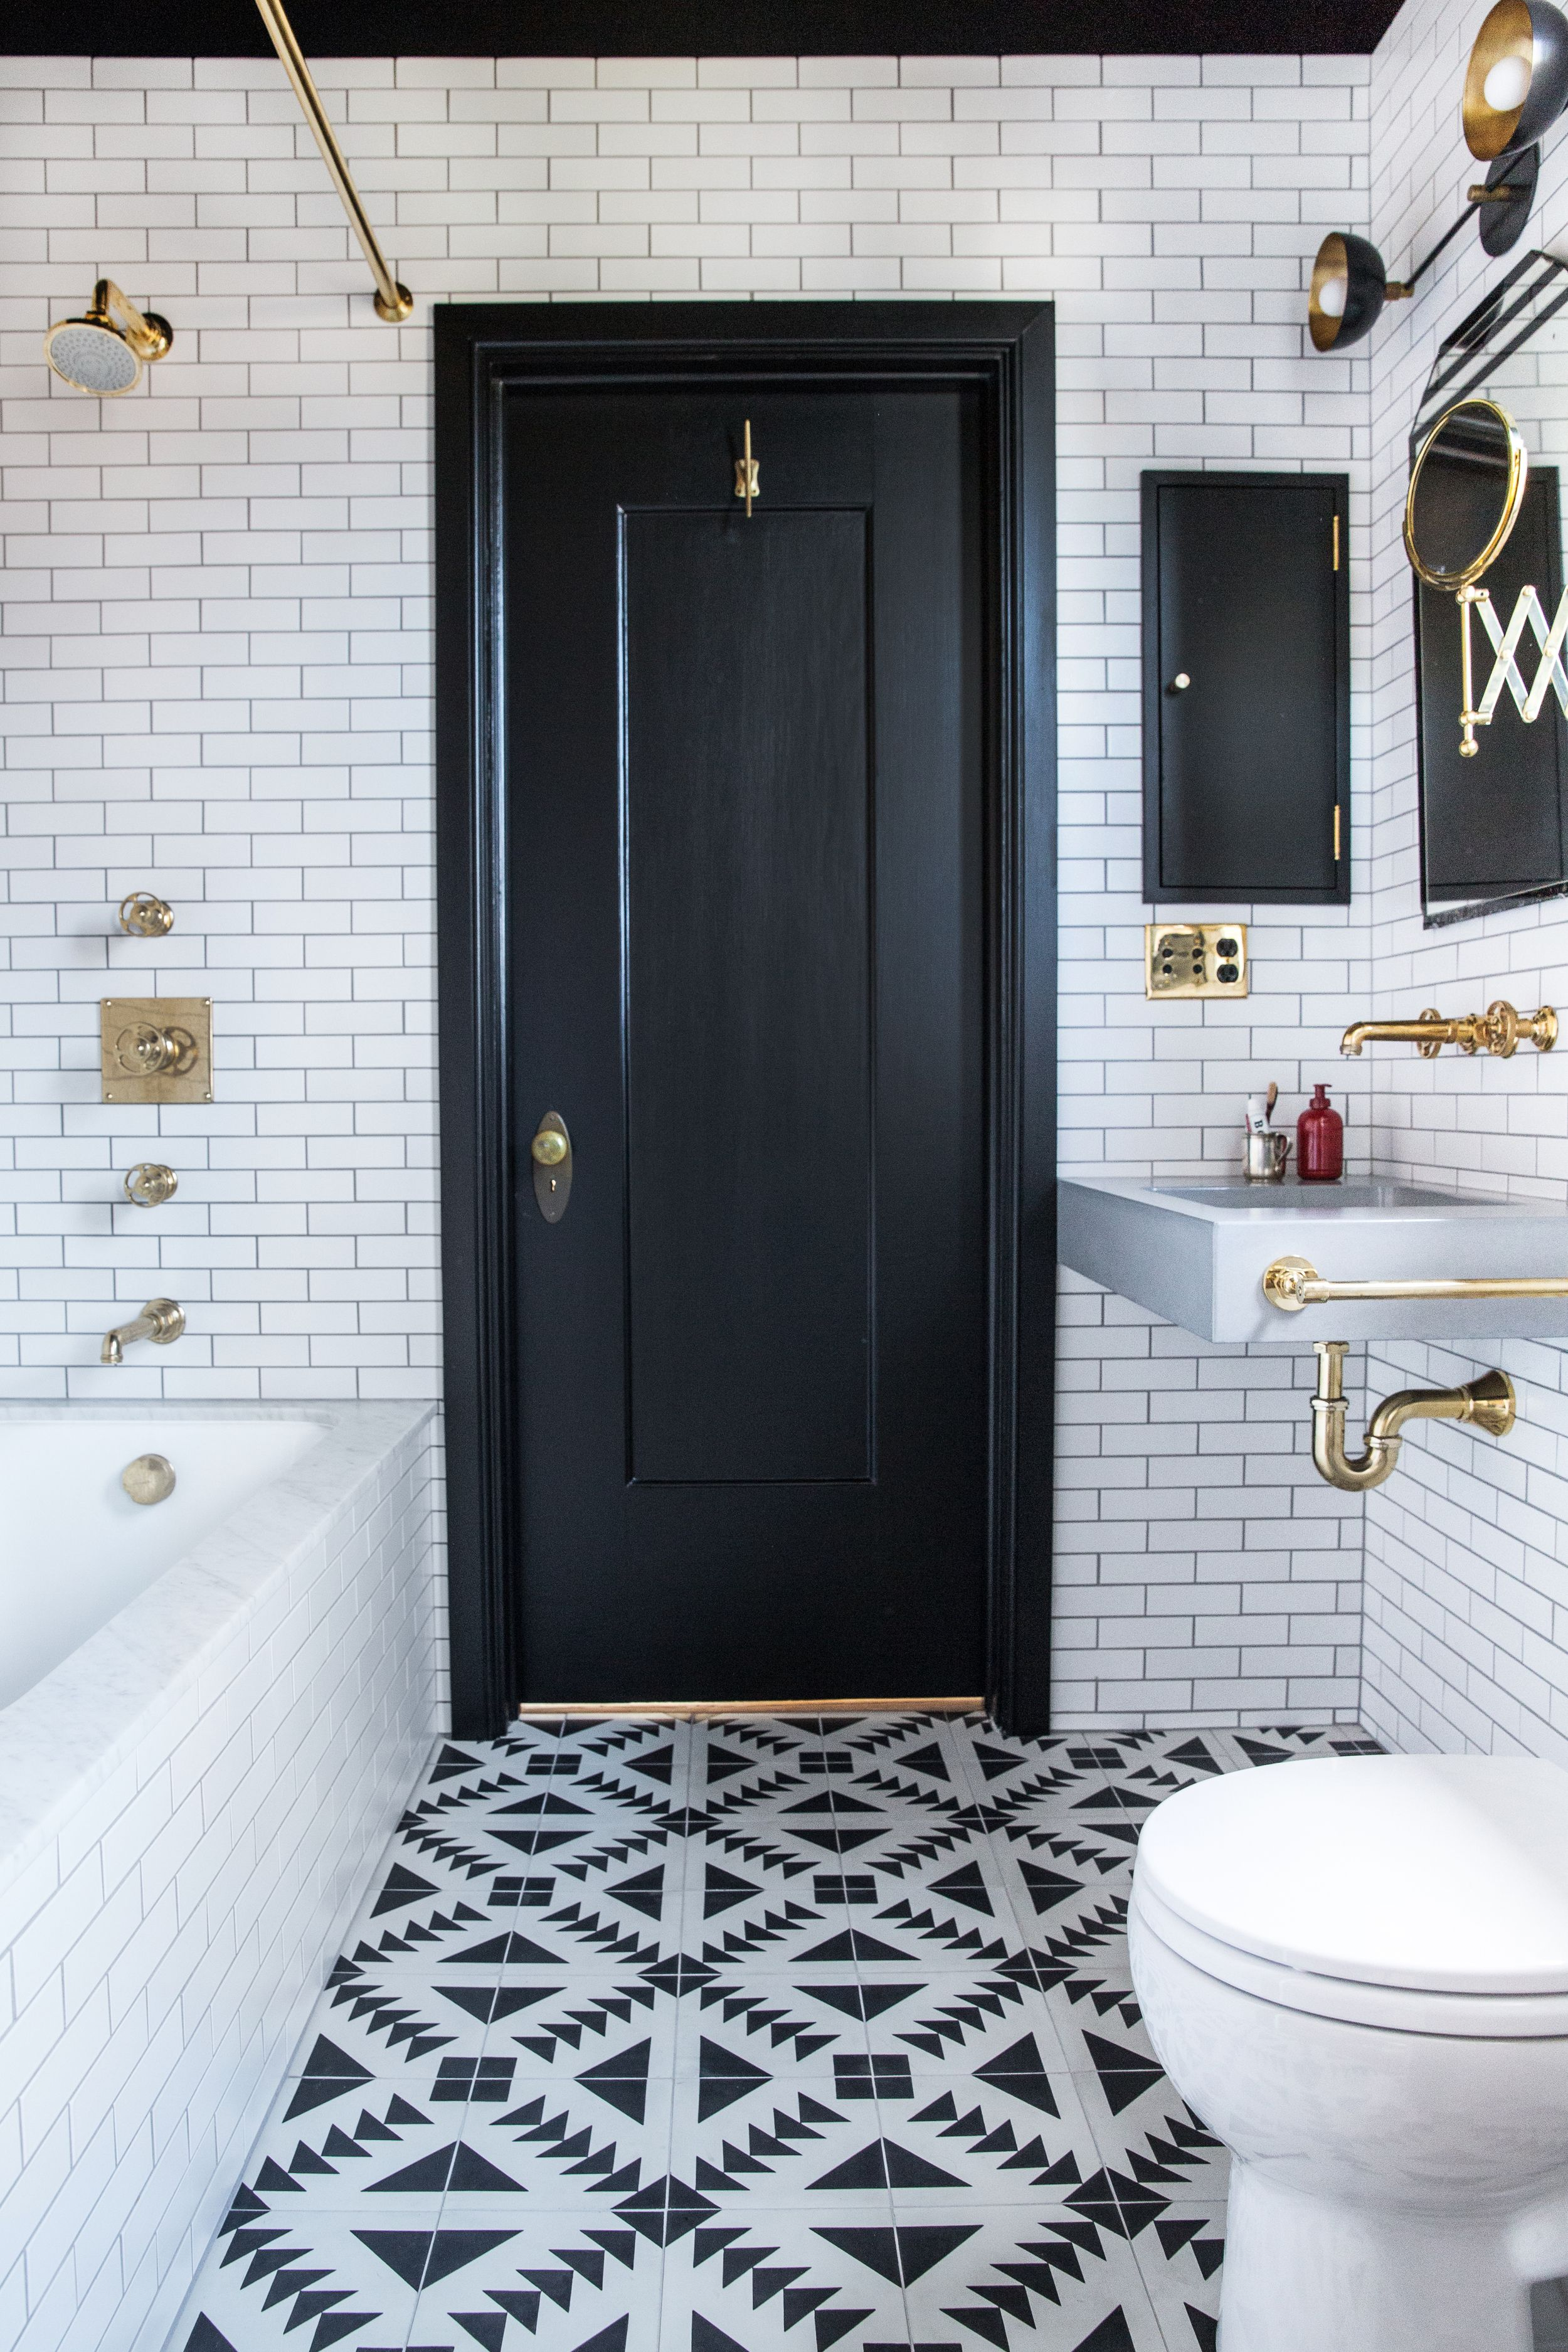 Tile Floor In Bathroom And Floor To Ceiling Subway Tile Walls. Design  Inspiration Part 47